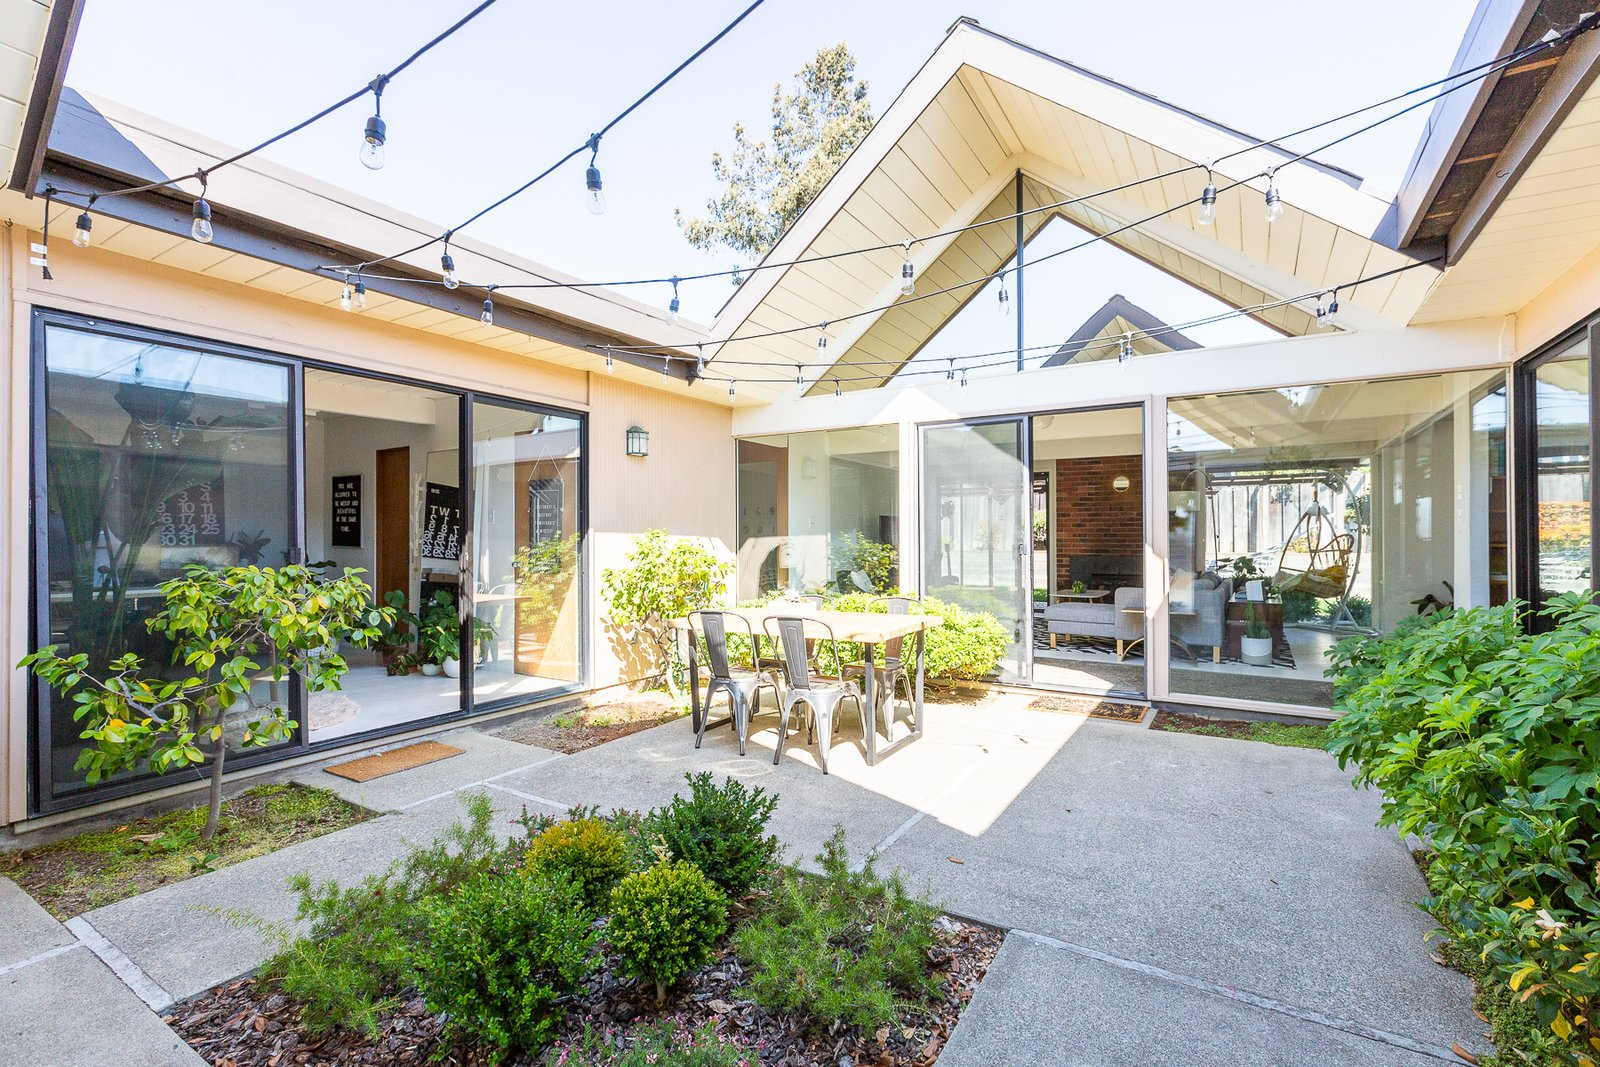 The atrium, one of the main distinguishing features of Eichler homes, connects the two A-frames. (Gillian Walsworth)